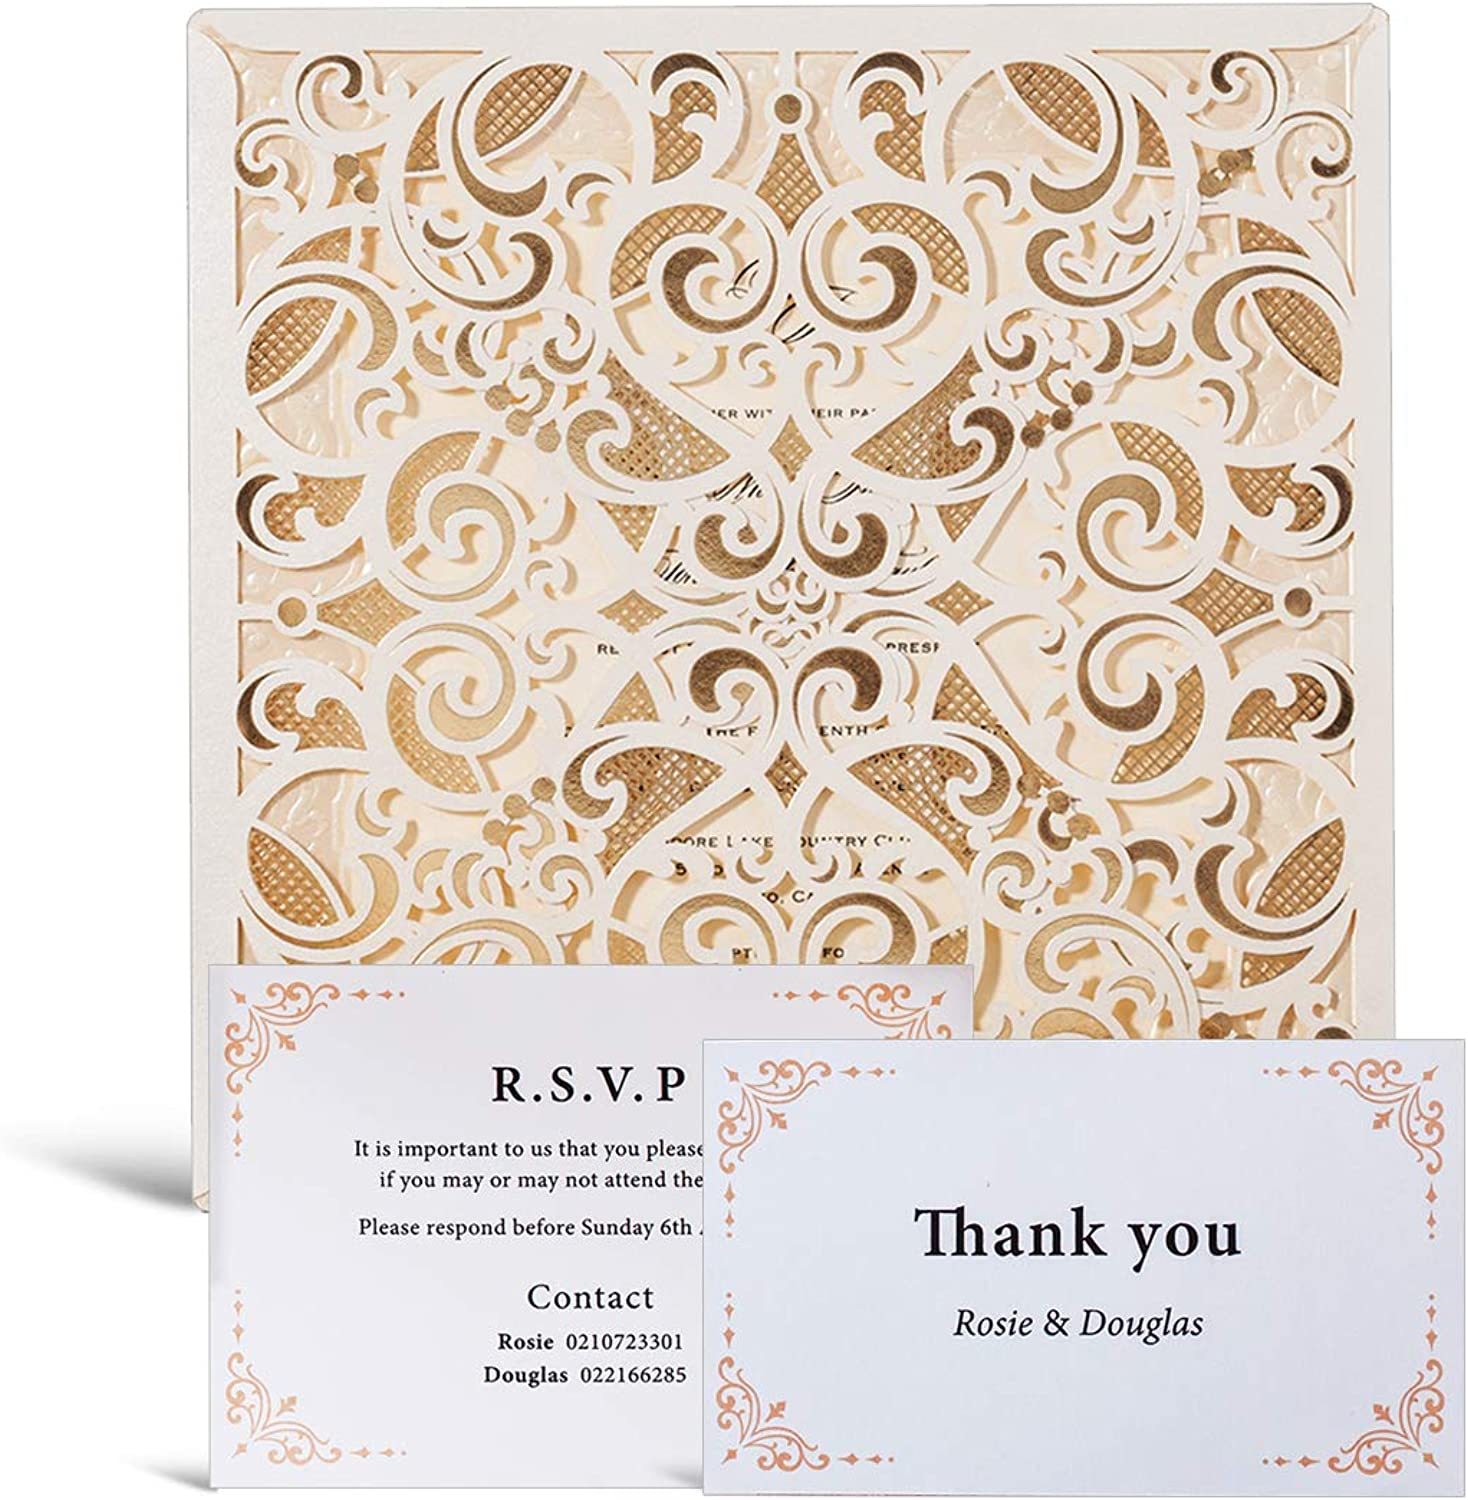 WISHMADE 50pcs Ivory Laser Cut Flora Lace Invitation Cards with Envelope Printable Blank Inserts Foil Wedding Invitations Bridal Shower Engagement Birthday with Matched RSVP Thank You Card